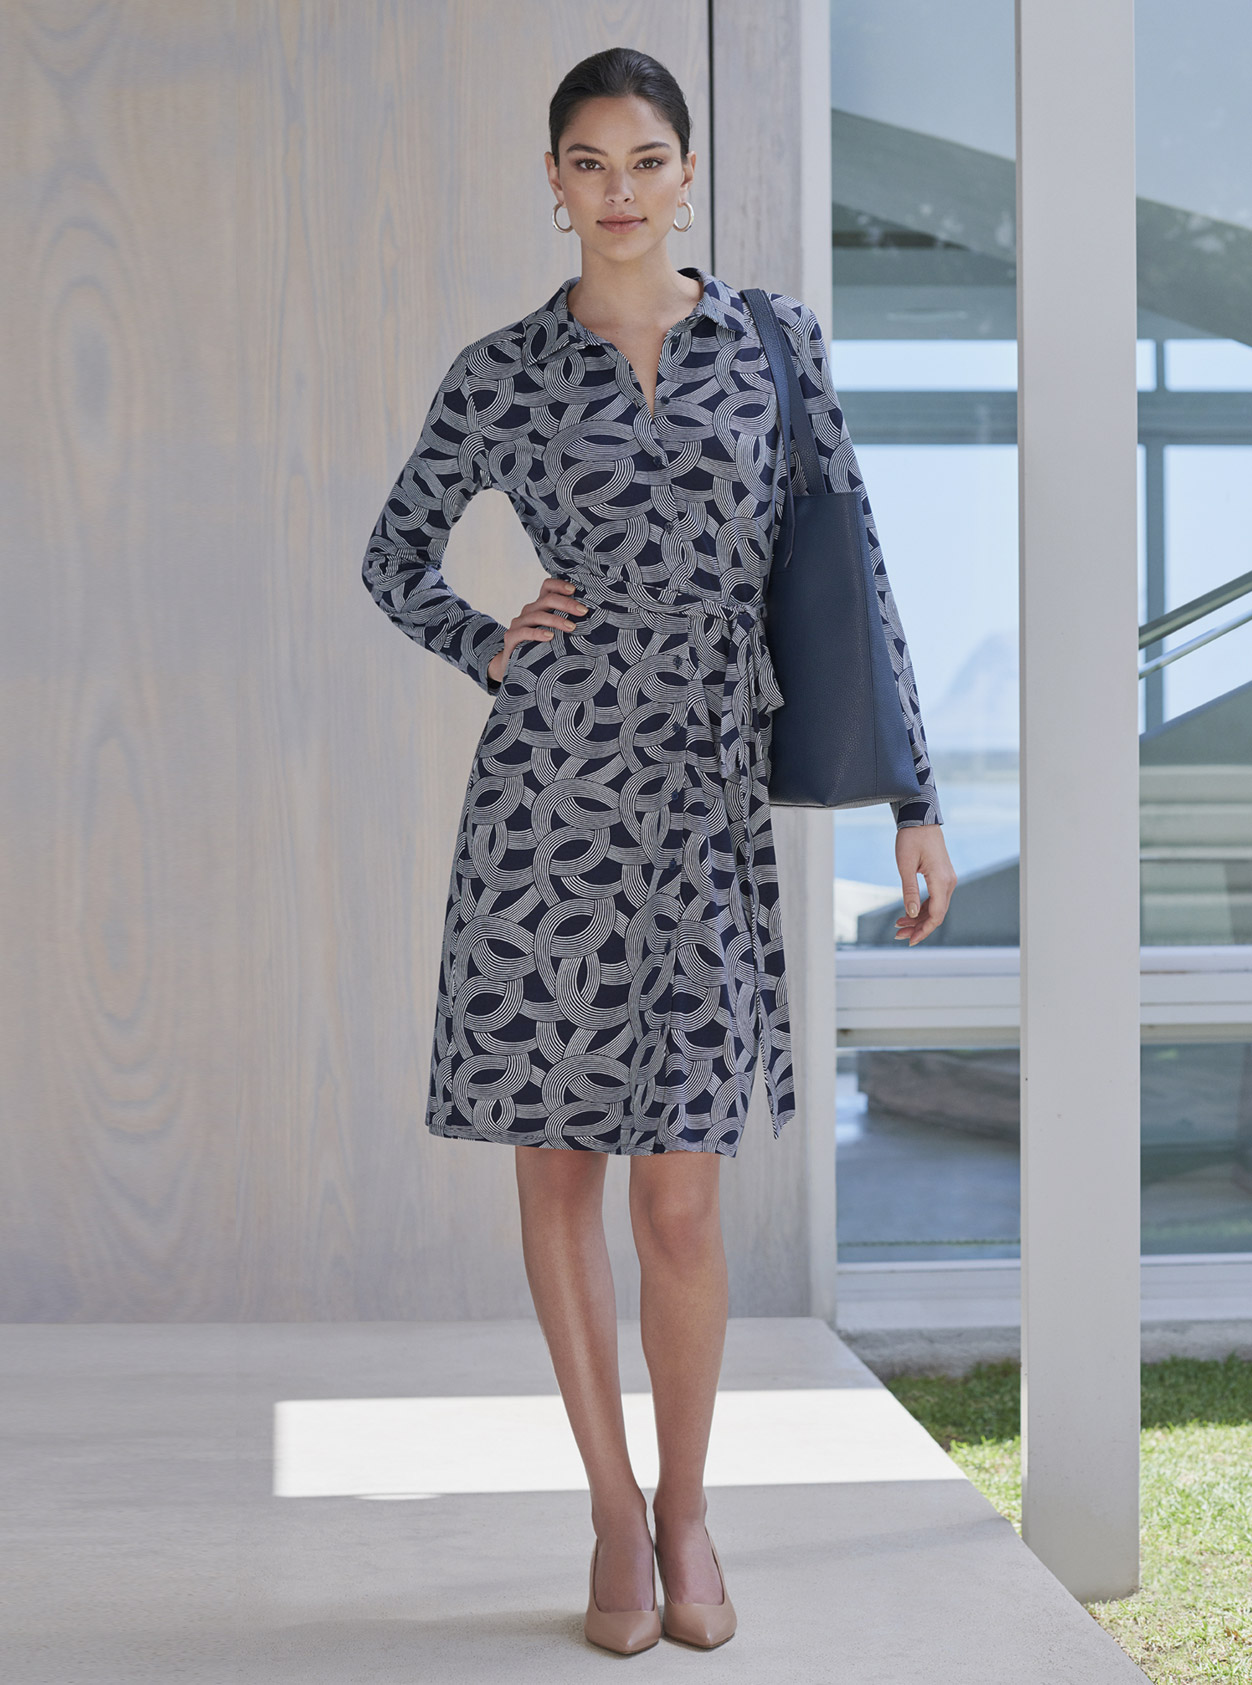 Patterned shirt dress in navy and ivory for smart casual dressing or for work, worn with nude court shoes, black leather tote and hoop earrings from Hobbs.